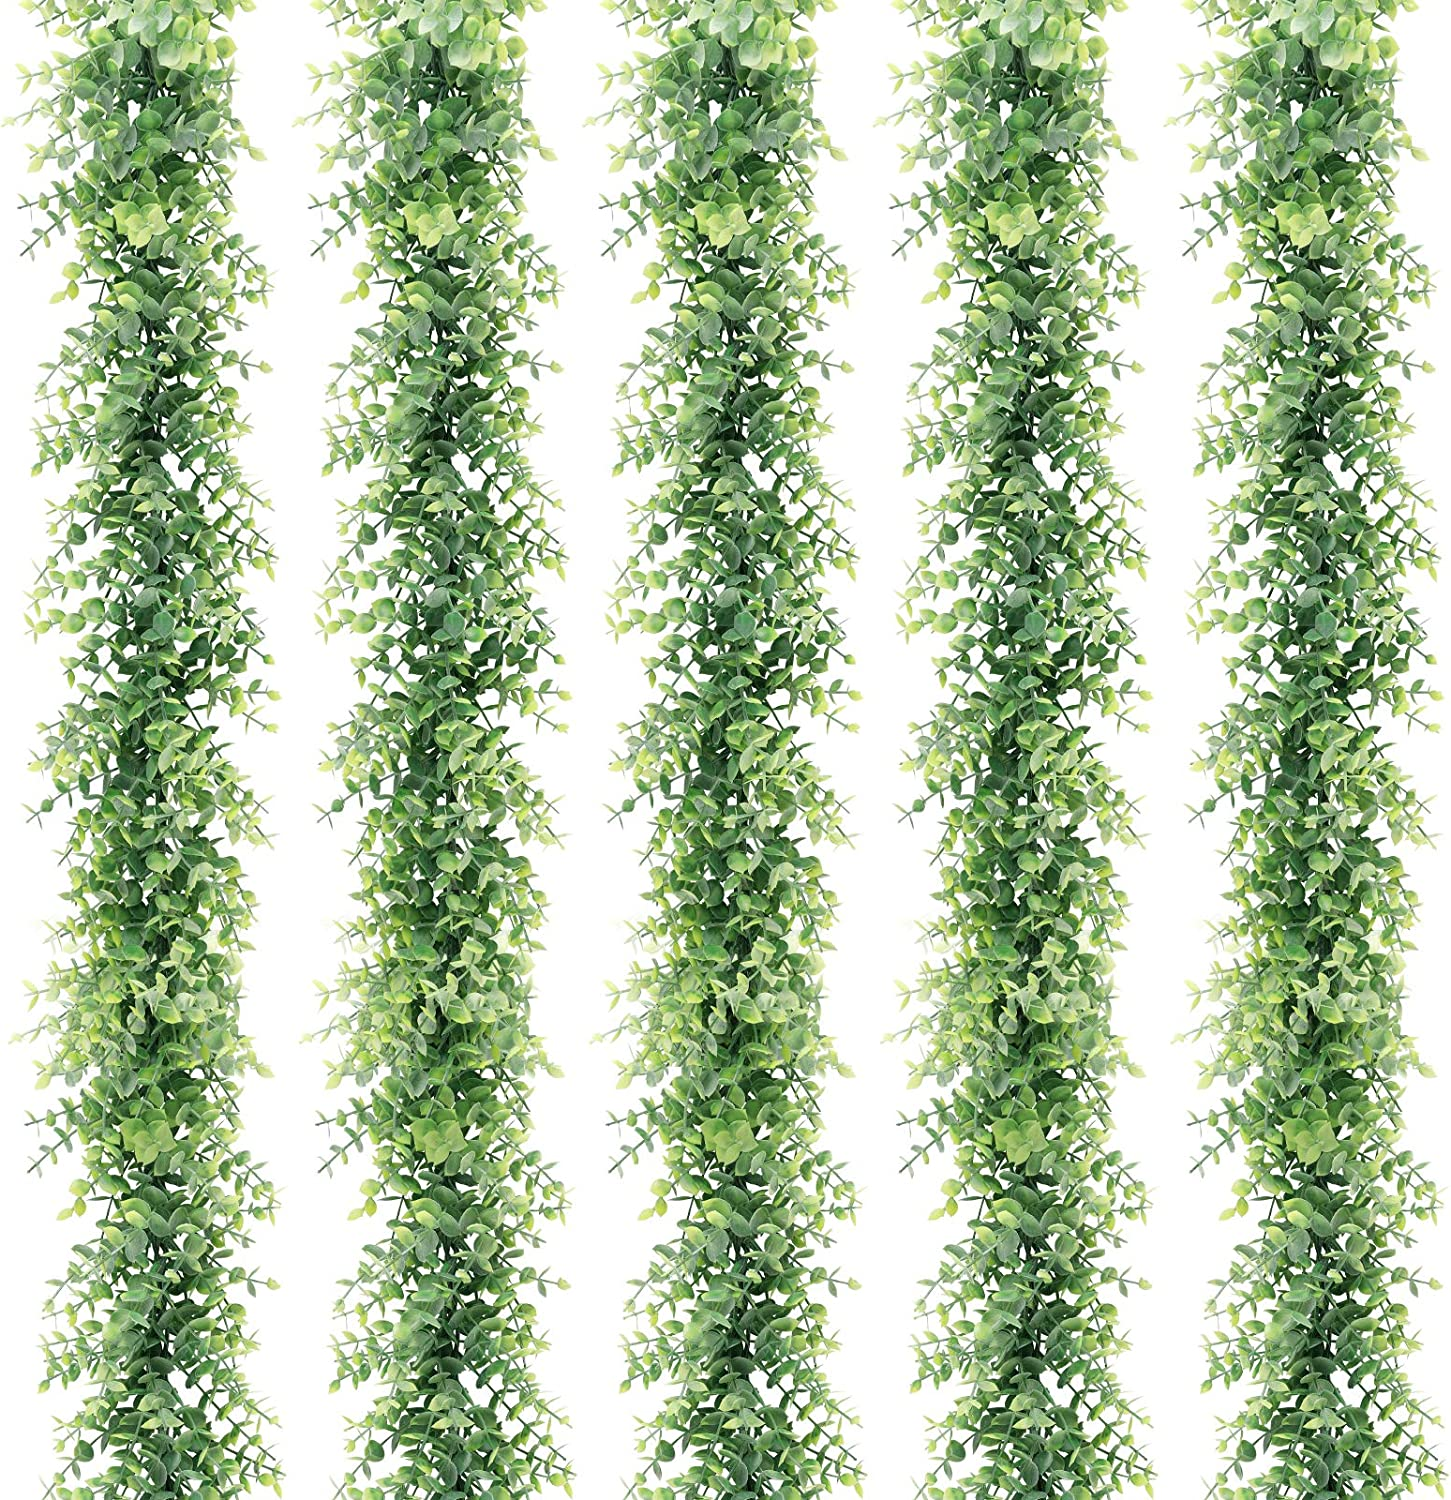 COCOBOO 5 Packs 6 Feet Artificial Eucalyptus Garland, Artificial Vines Faux Eucalyptus Greenery Garland, Fake Hanging Plant for Wedding Wall Decor Arch Backdrop, Party Festival Table(Light Green)